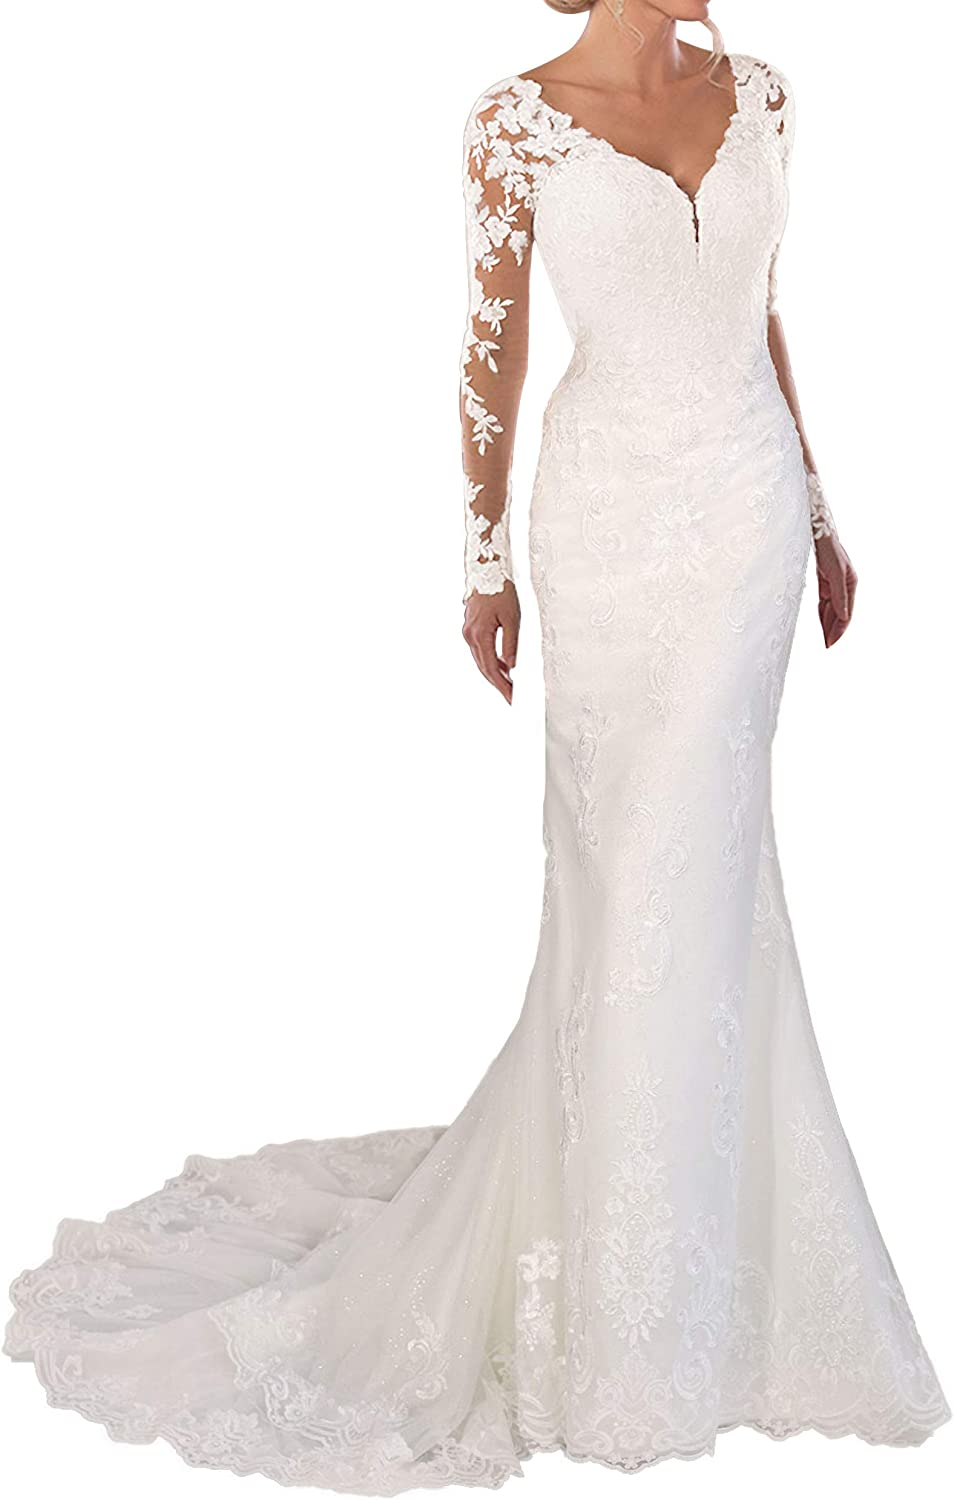 Wedding Dress Lace Bridal Gown Long Sleeves Mermaid Bride Dresses V Neck Wedding Gowns